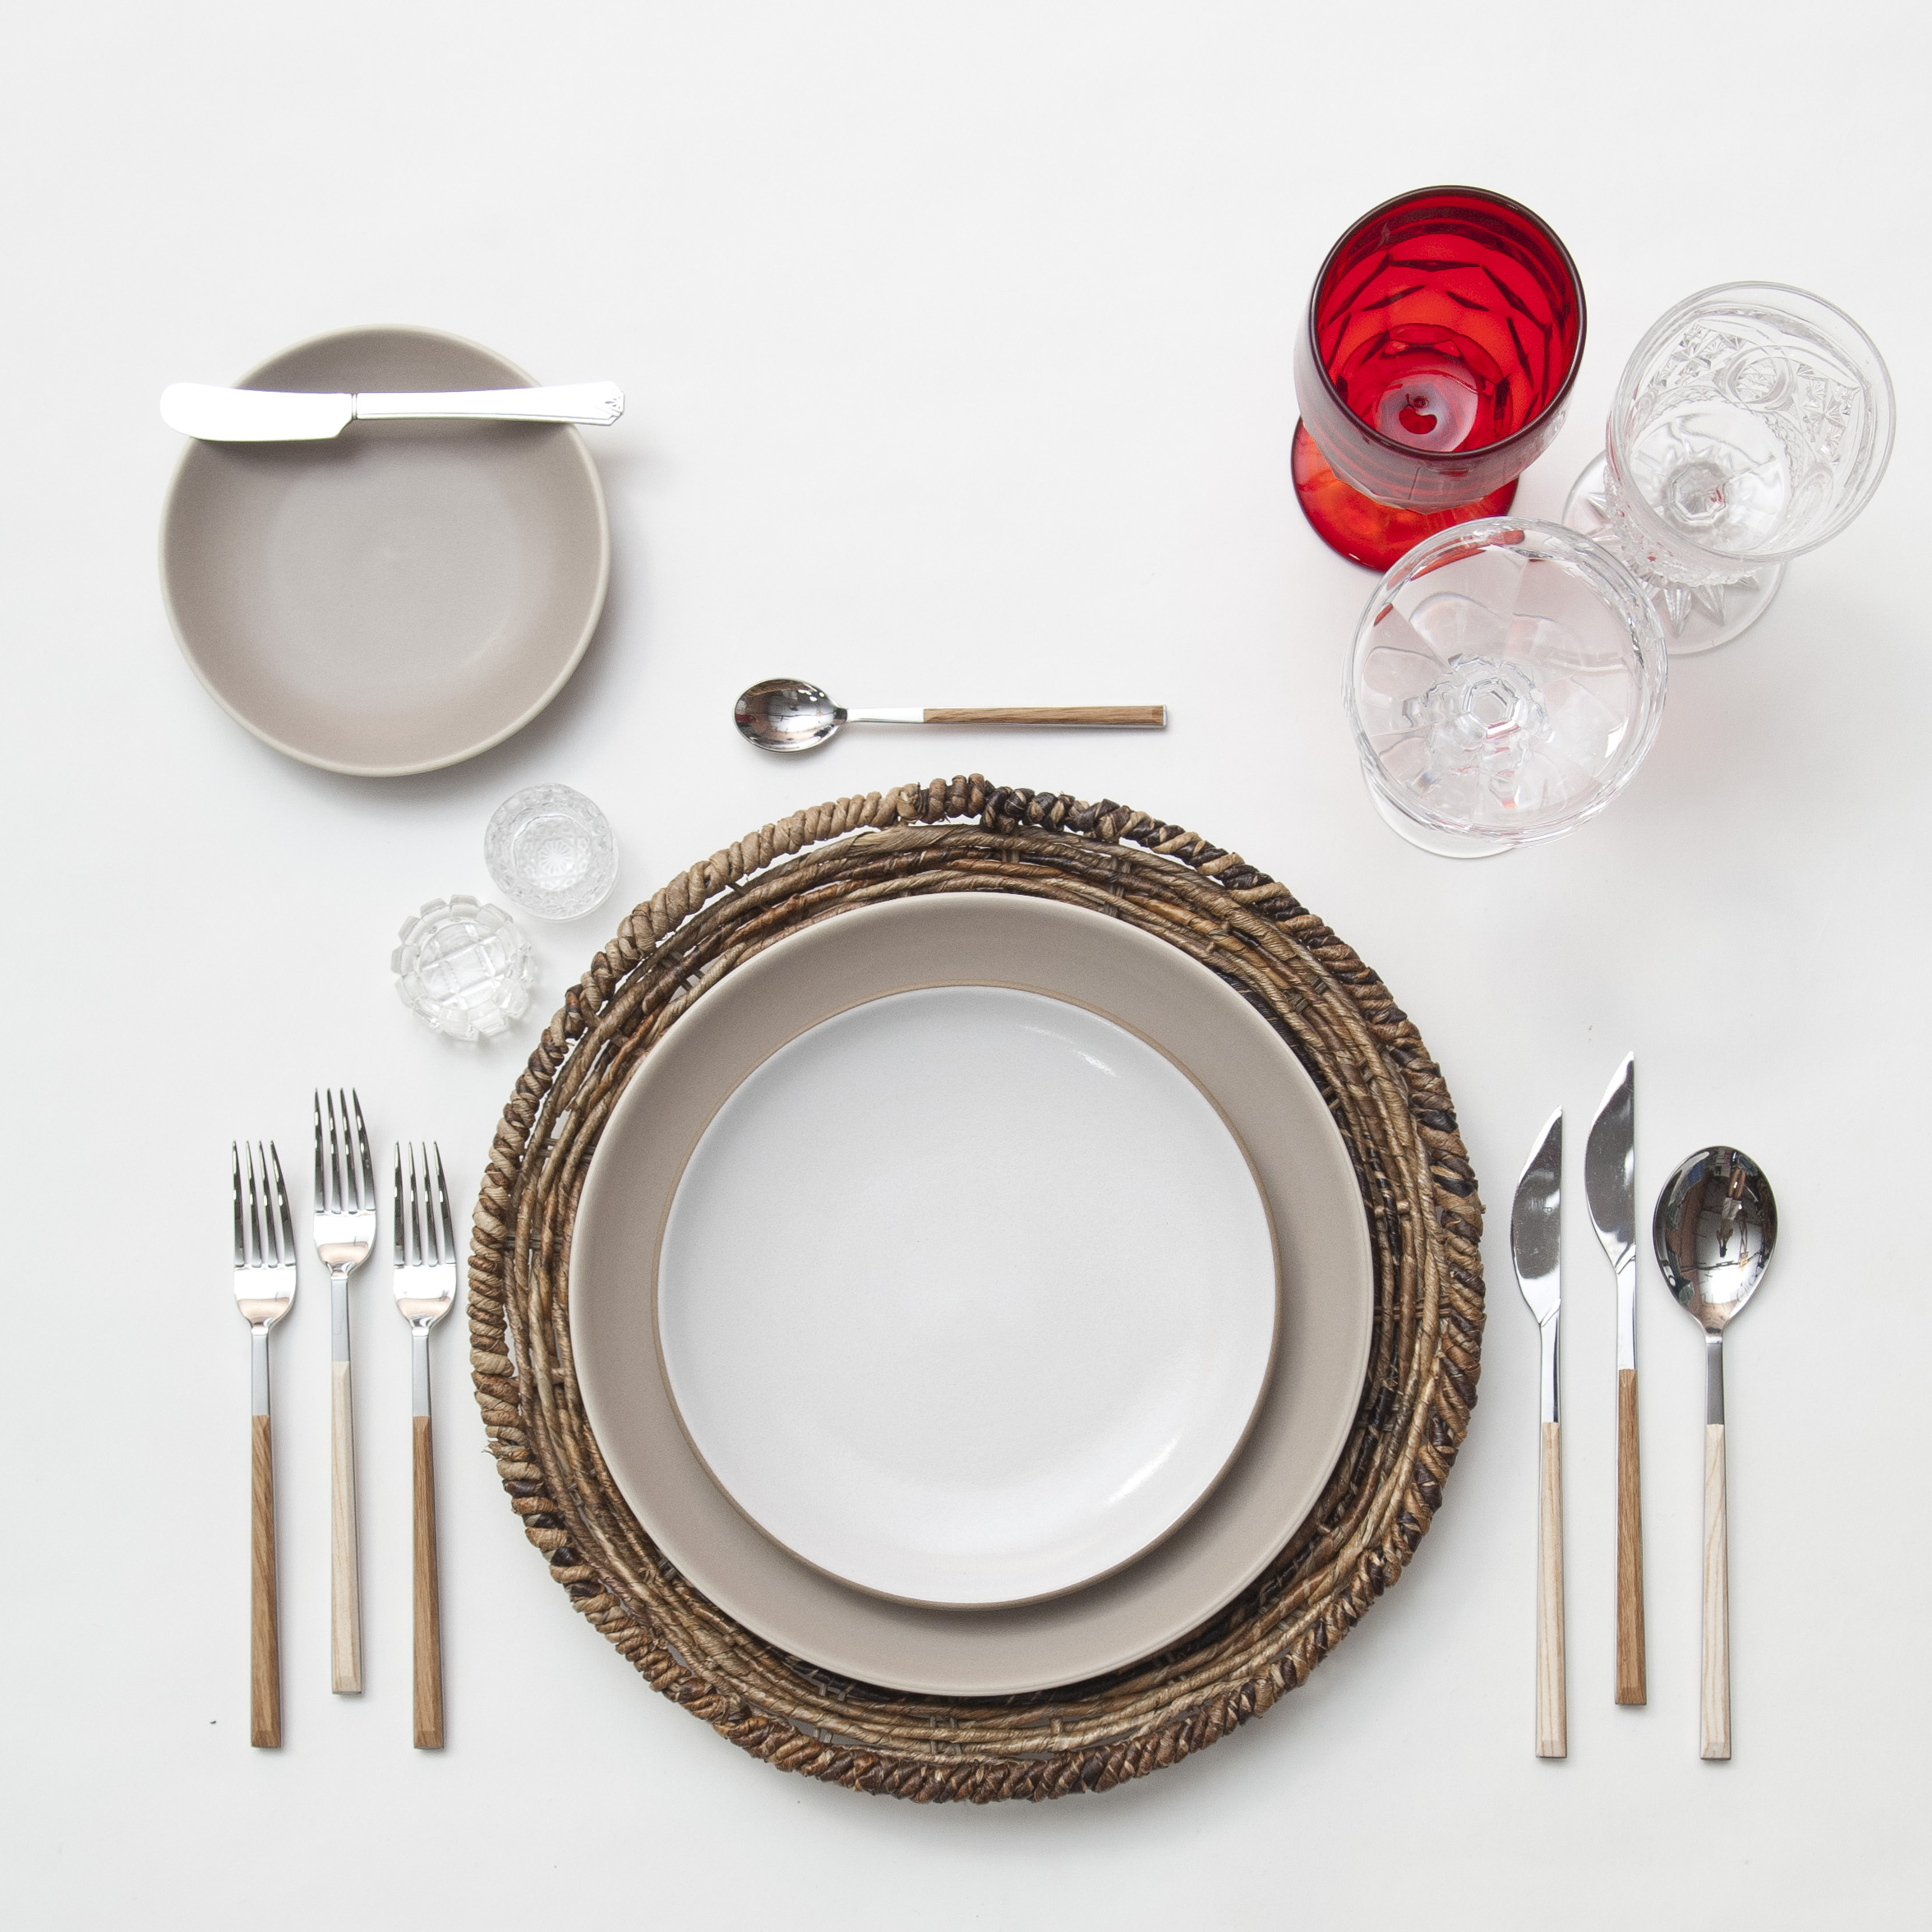 RENT: Natural Woven Chargers + Heath Ceramics in French Grey/Opaque White + Danish Flatware in Teak/Birch + Red Vintage Goblets + Early American Pressed Glass Goblets + Vintage Champagne Coupes + Antique Crystal Salt Cellars